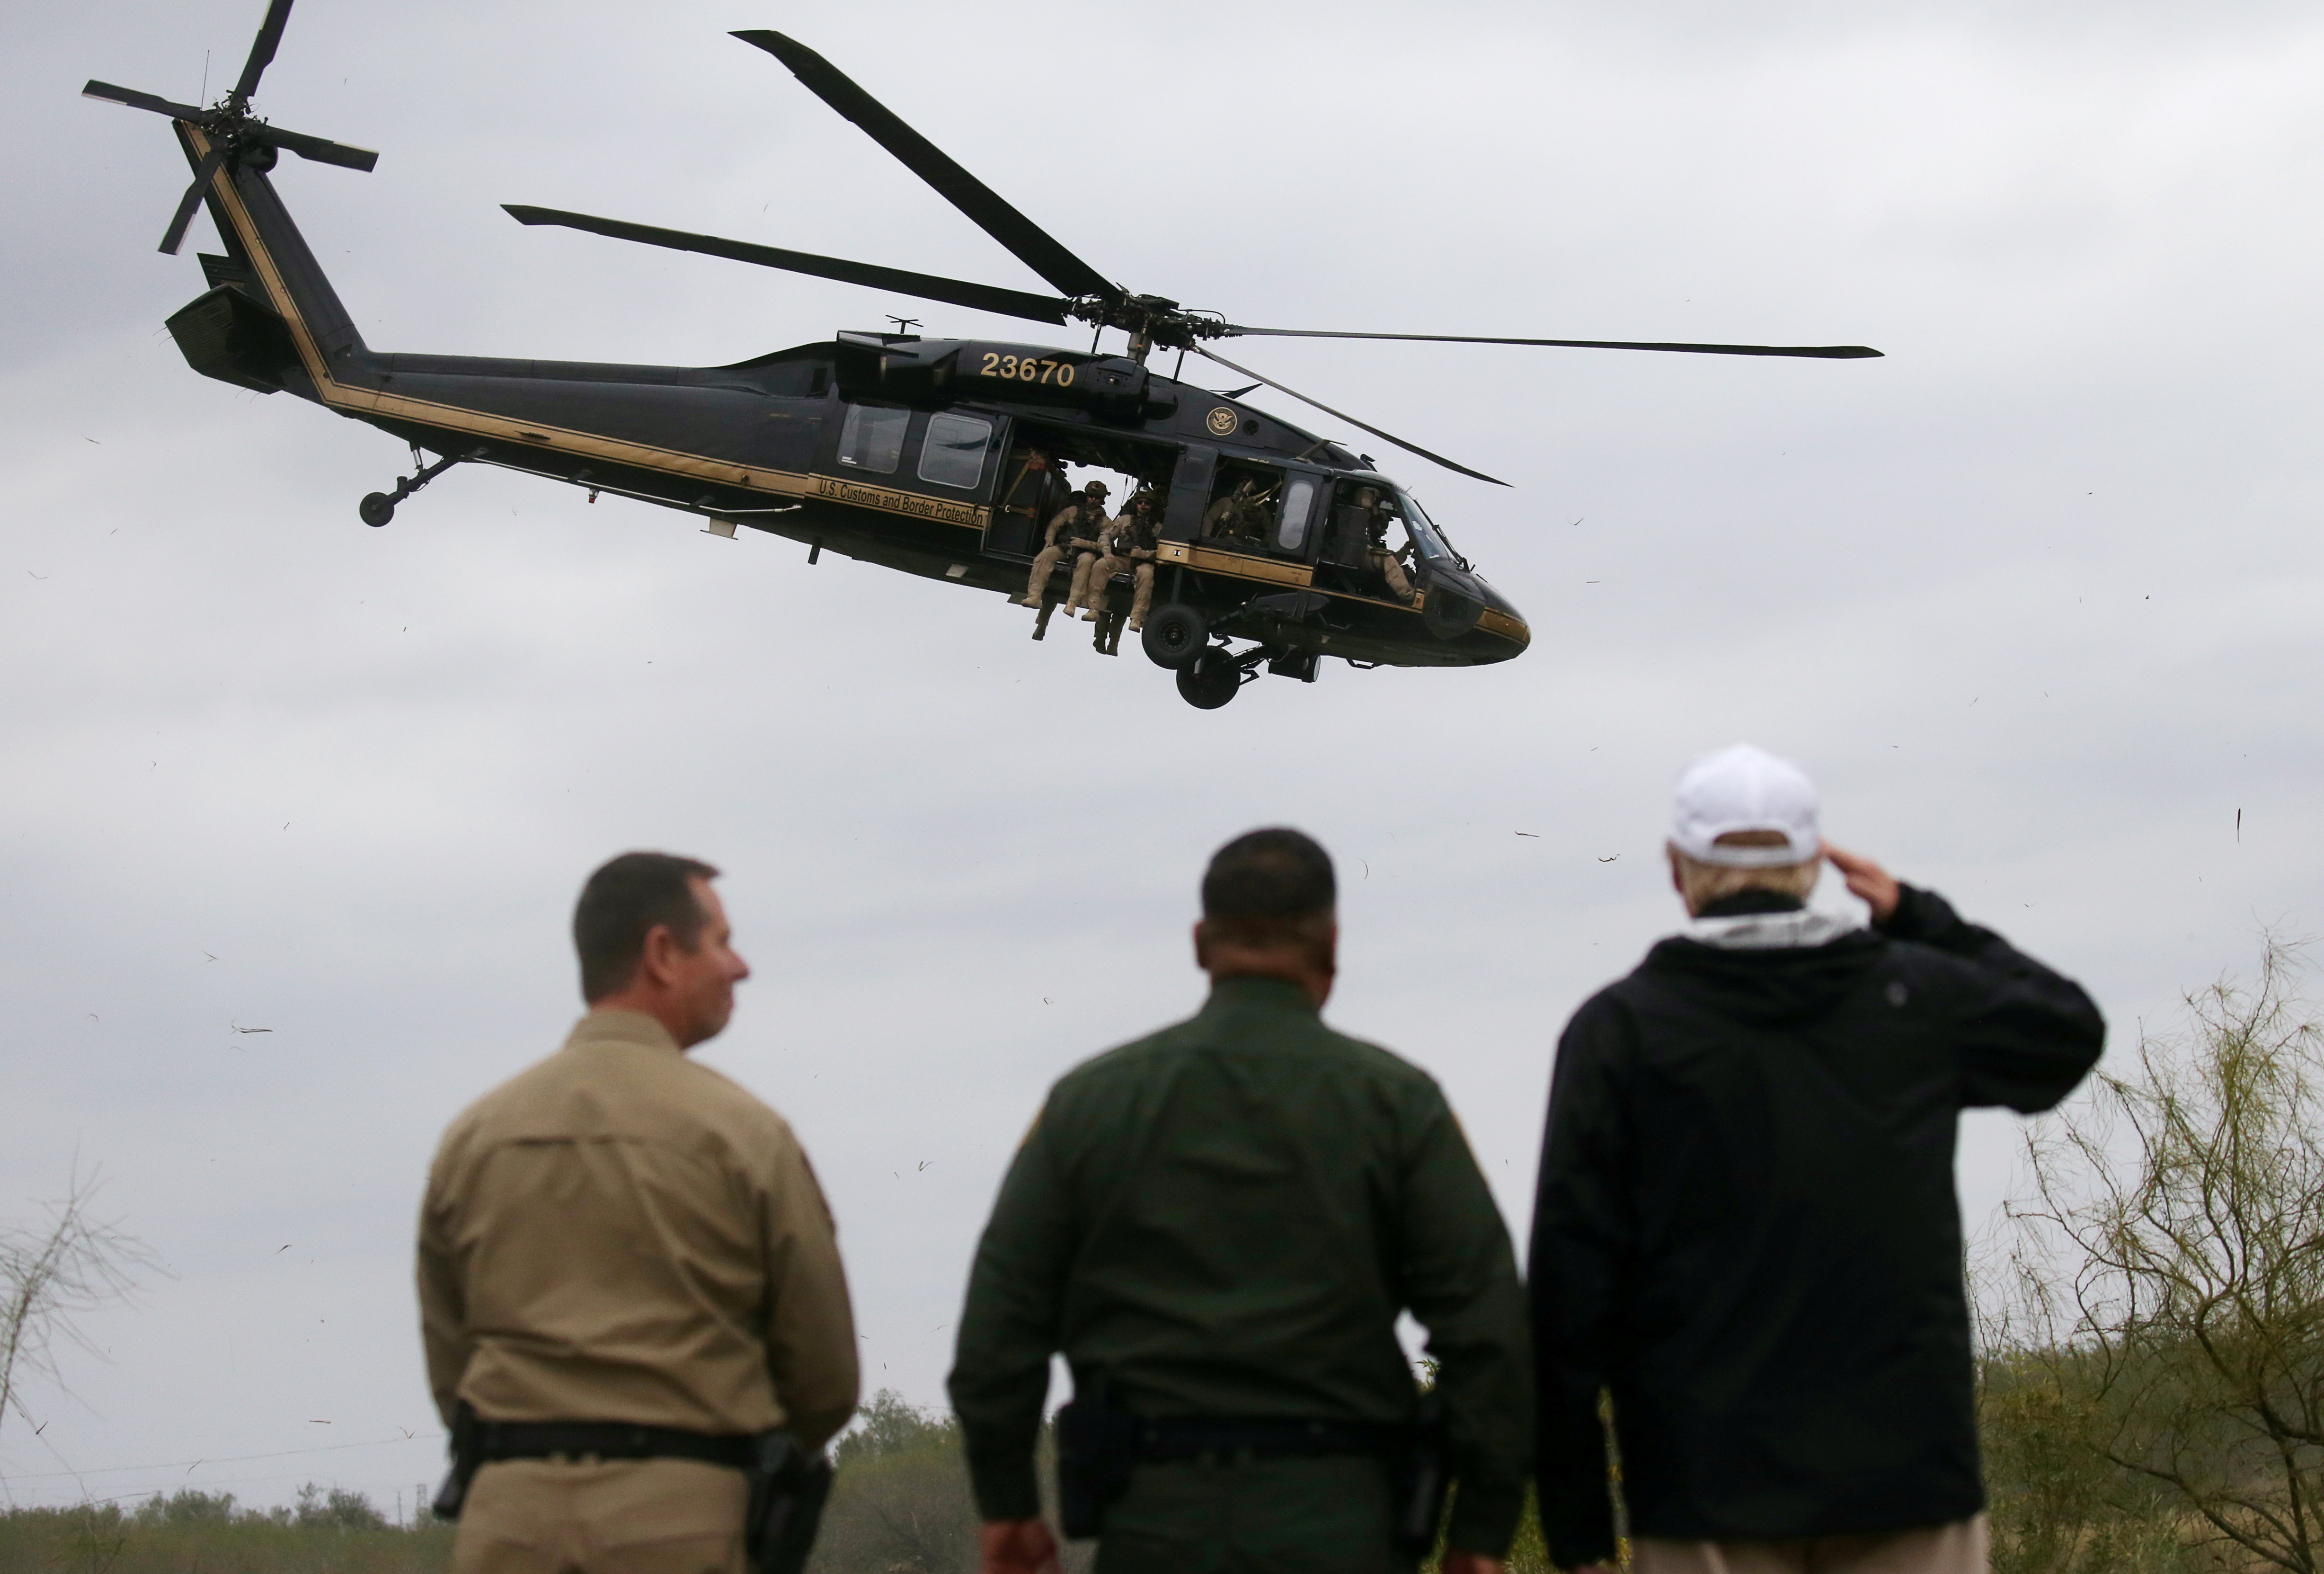 President Donald Trump salutes a U.S. Border Patrol helicopter as he stands with U.S. Border Patrol agents as it flies over the Rio Grande River during his visit to the U.S. - Mexico border in Mission, Texas, U.S., January 10, 2019. REUTERS/Leah Millis